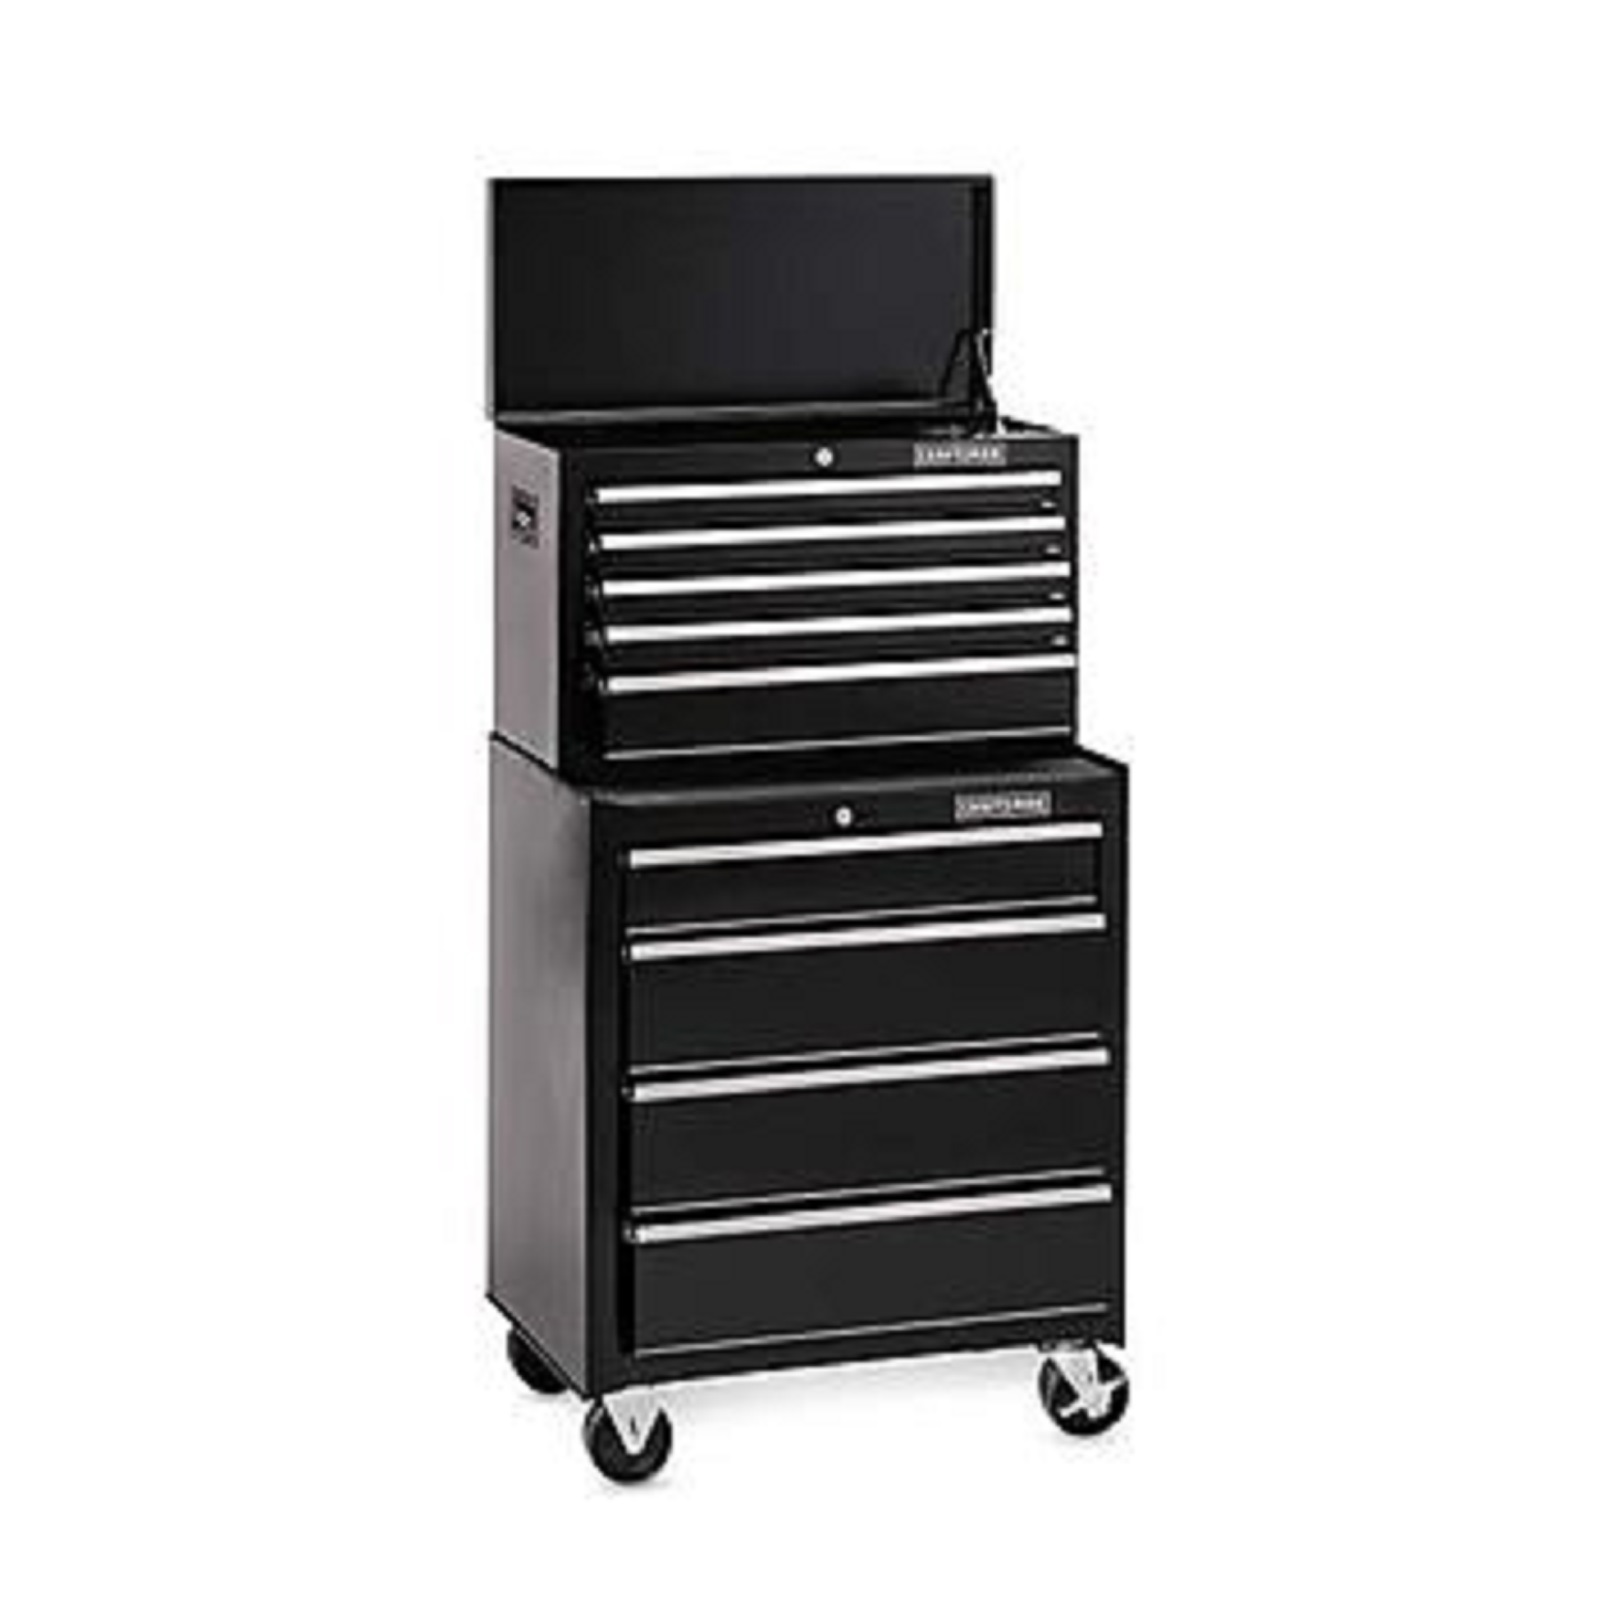 26 in. Wide 9-Drawer Ball-Bearing GRIPLATCH Combo